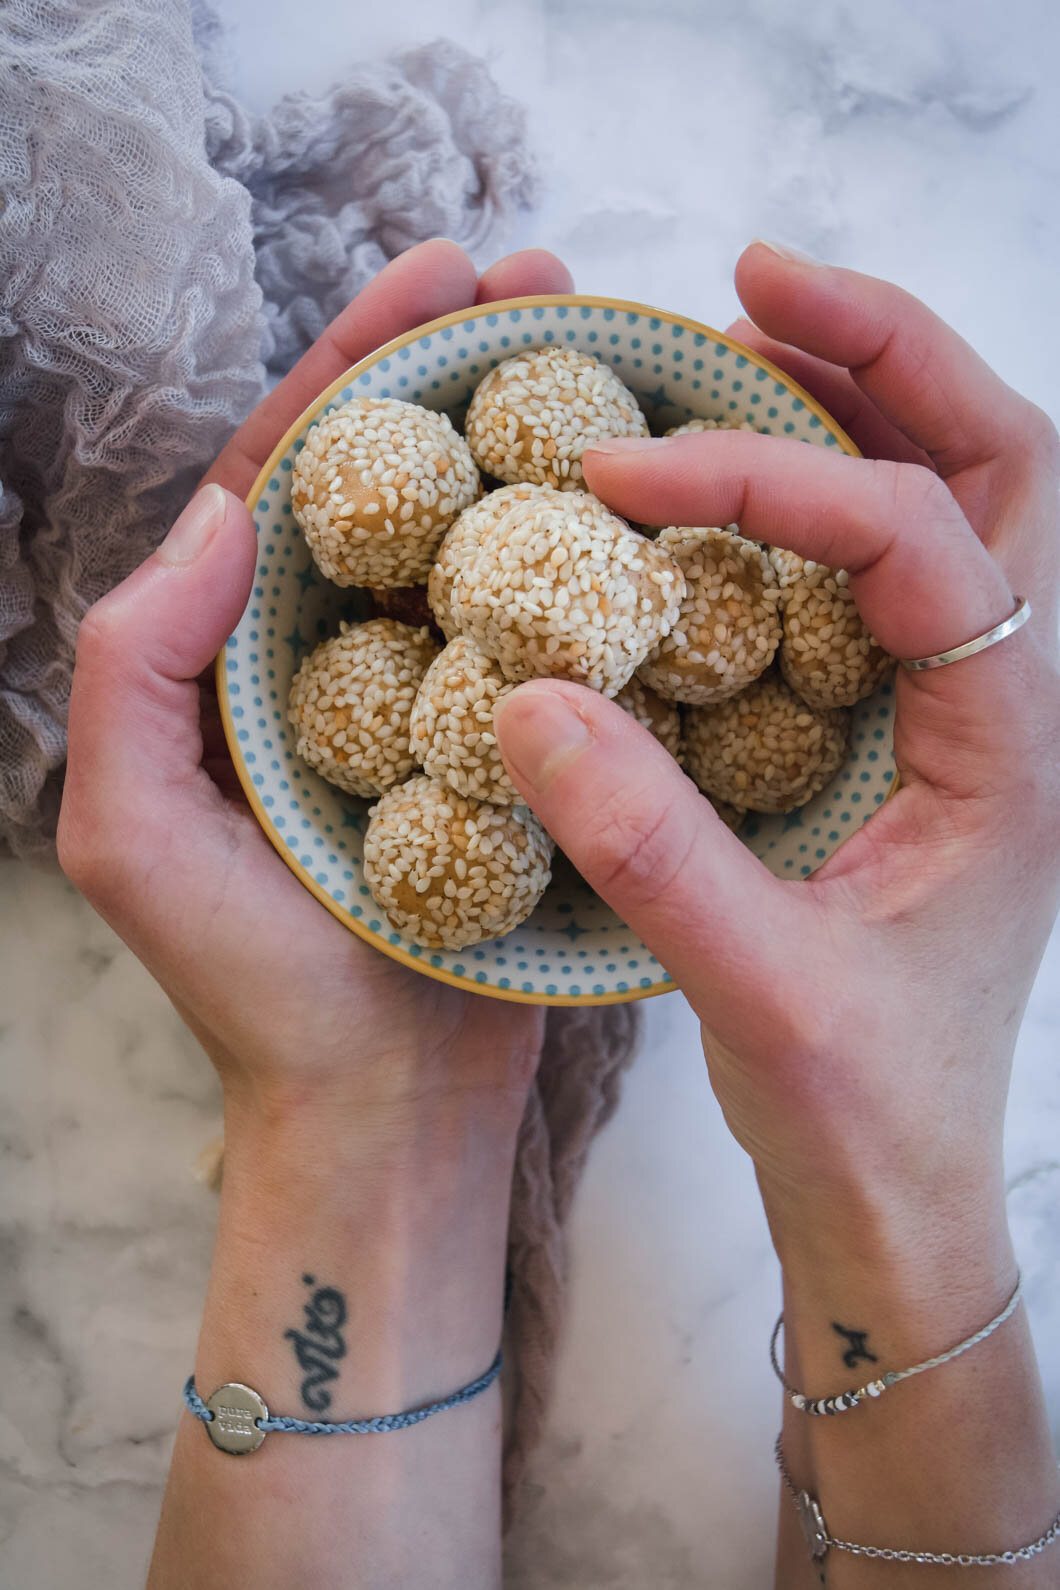 Hands holding bowl with peanut butter sesame balls